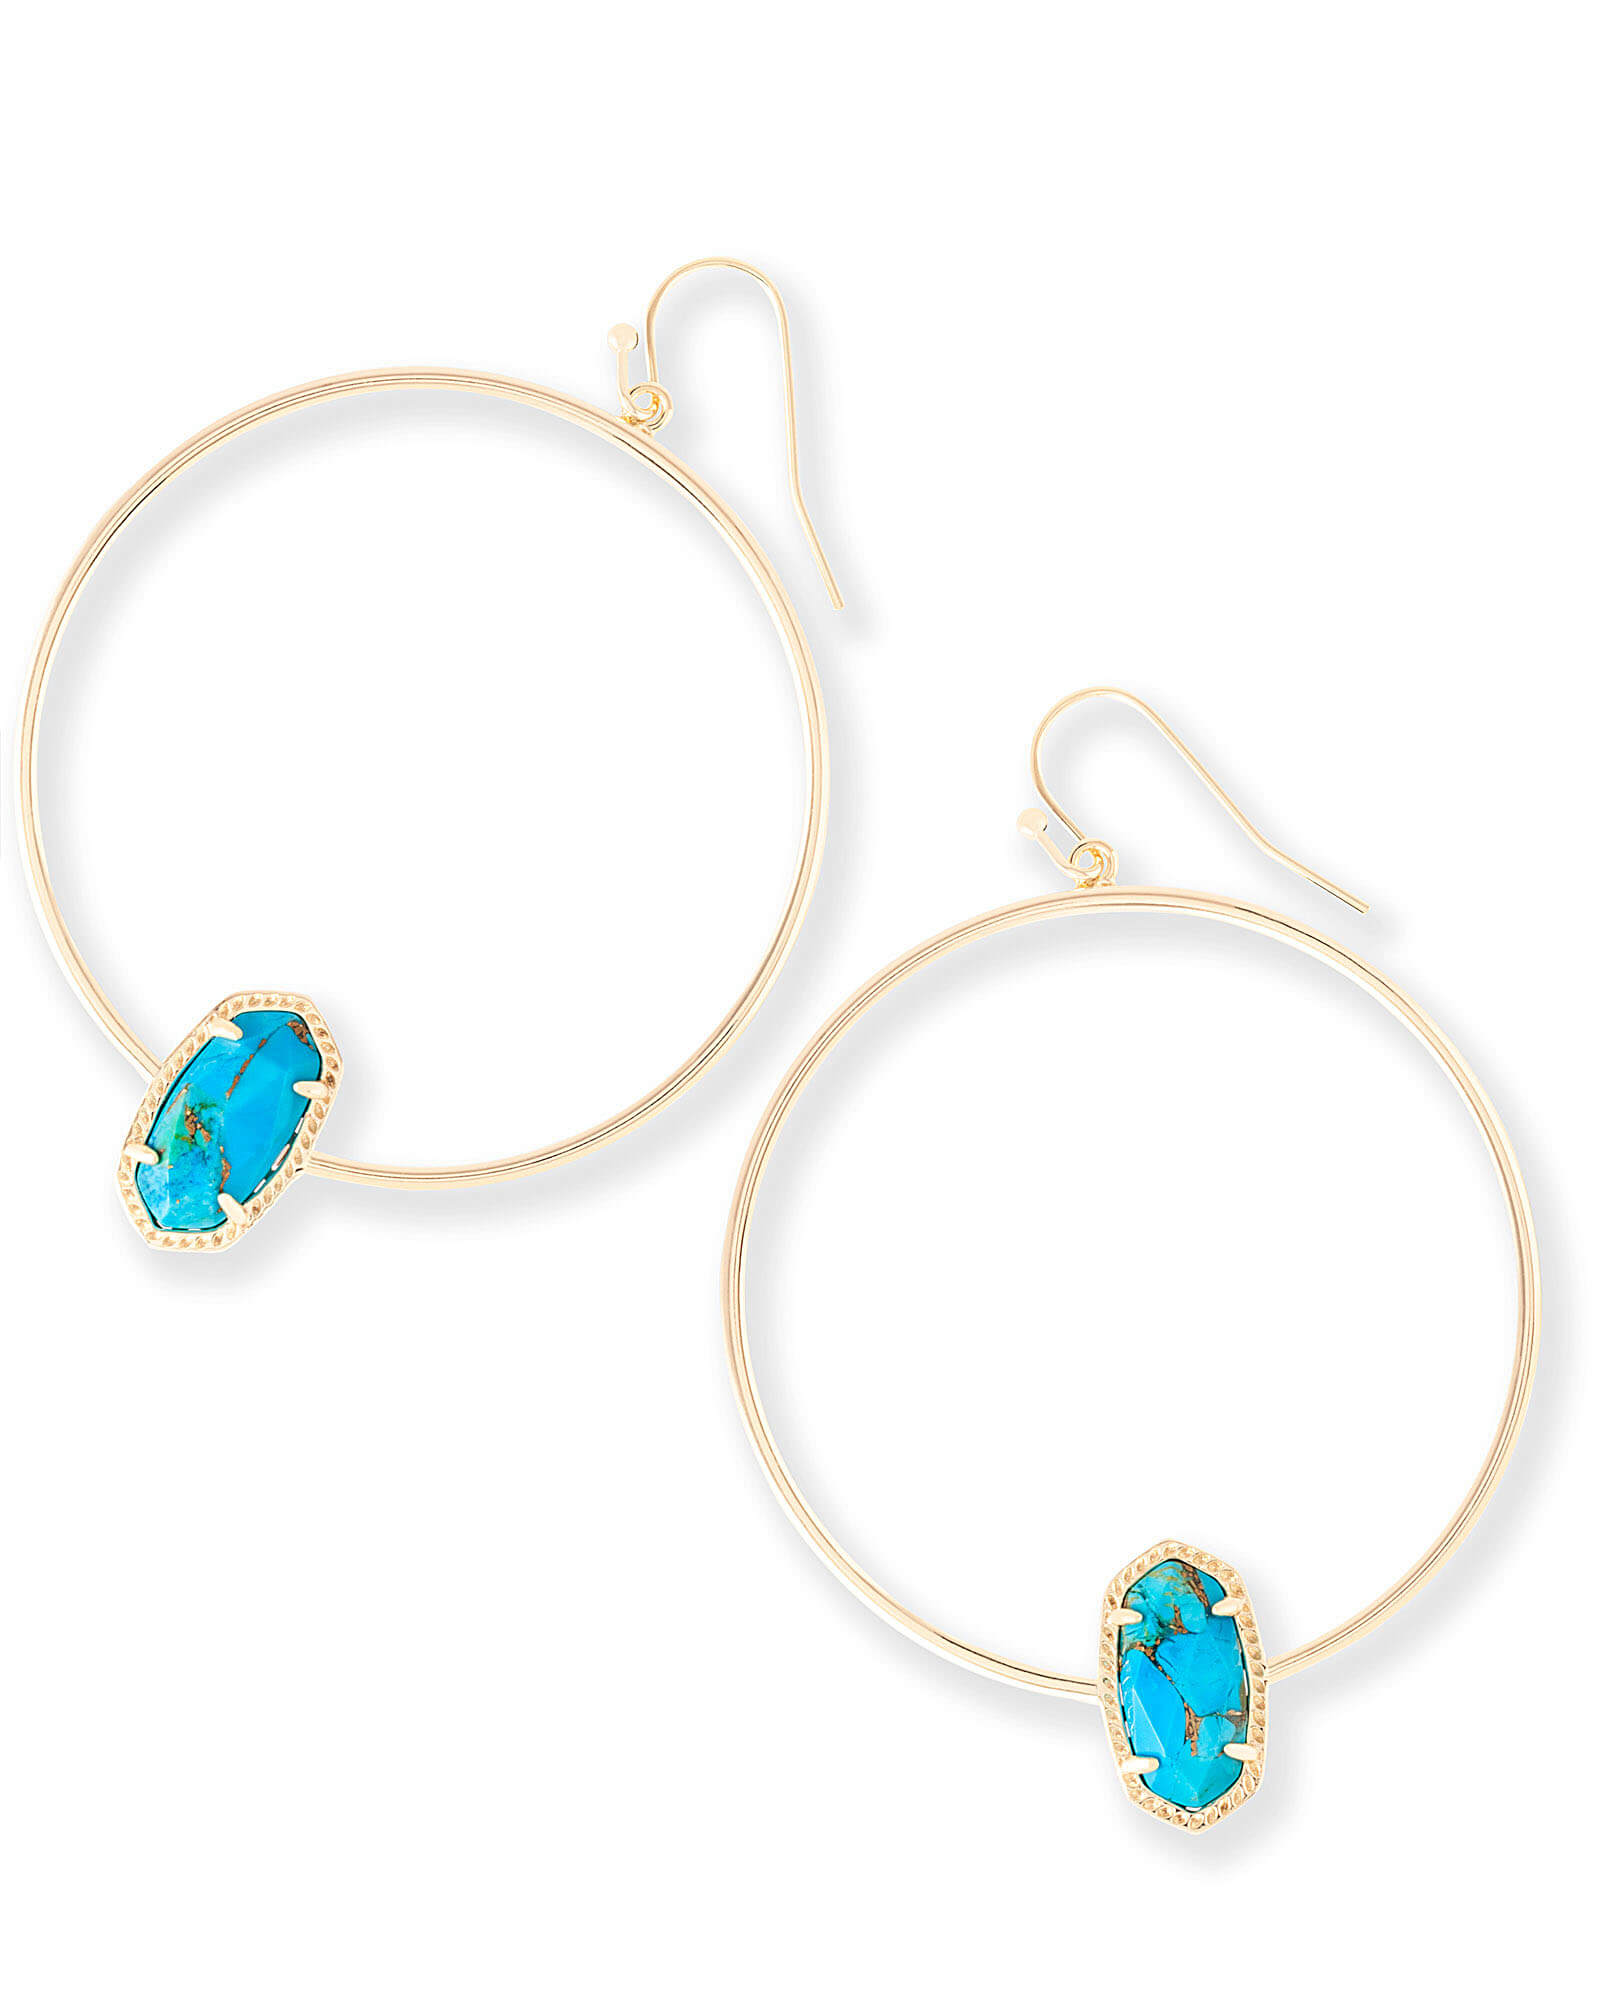 Elora Hoop Earrings in Bronze Veined Turquoise